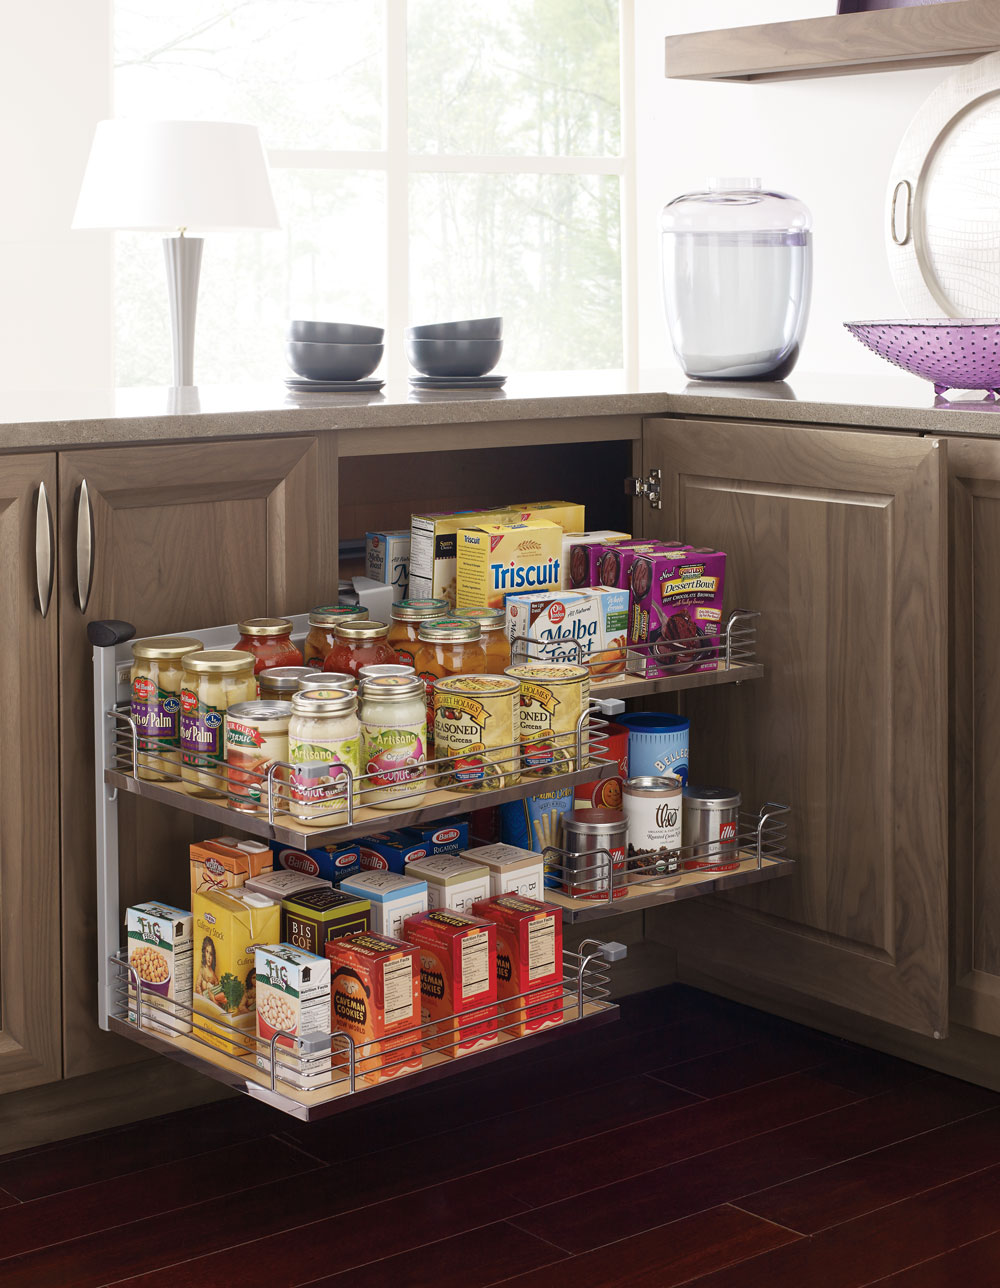 Charmant Innovative Storage Solutions Are Important When It Comes To Your Kitchen  Cabinets. Having Enough Storage Will Keep Your Countertops Open For  Workspace And ...